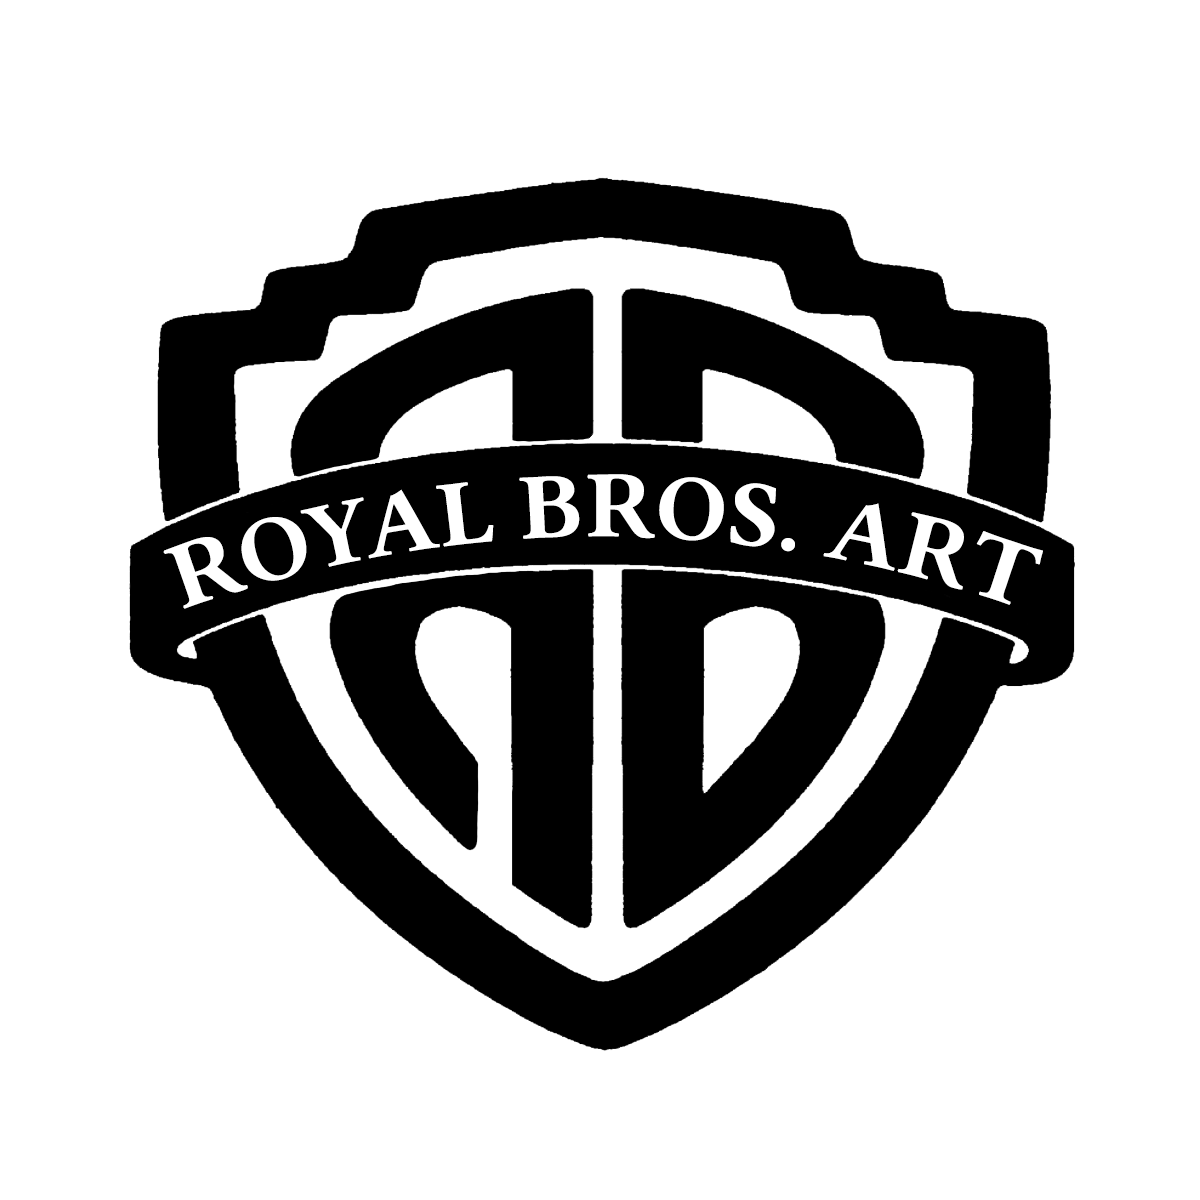 Royal Bros Art